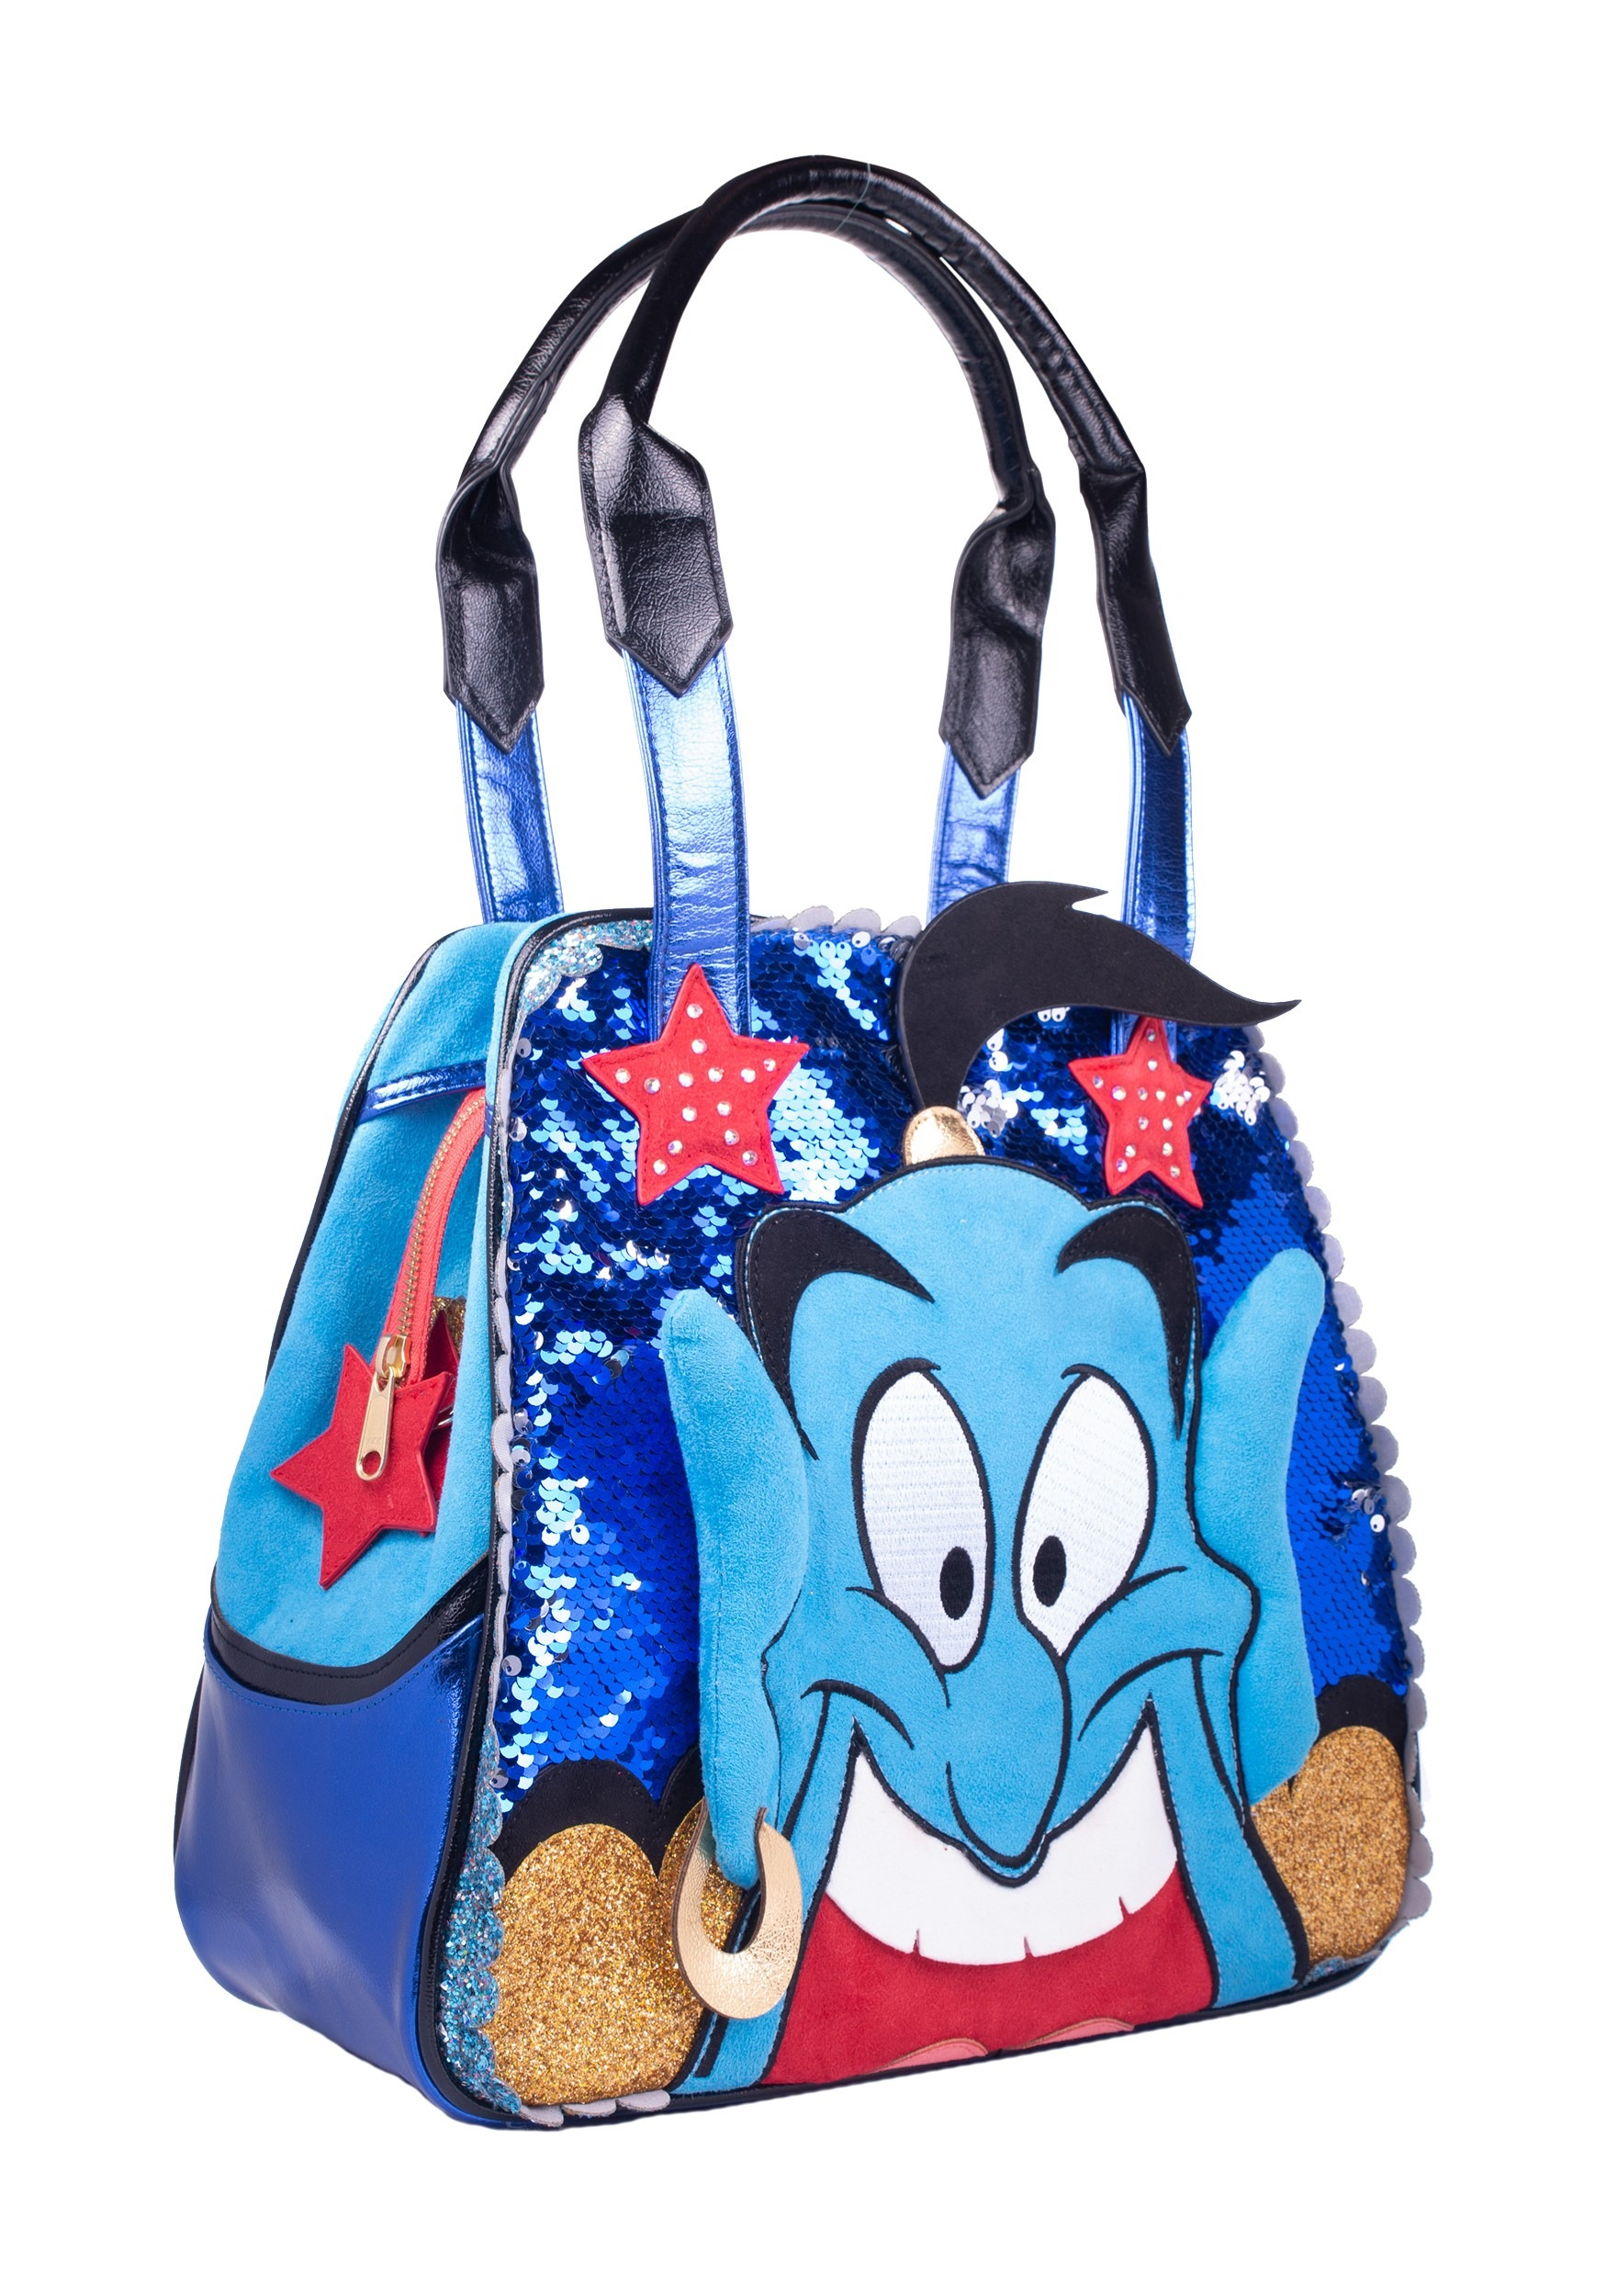 Irregular Choice- Disney Princess Aladdin Genie Hand Bag